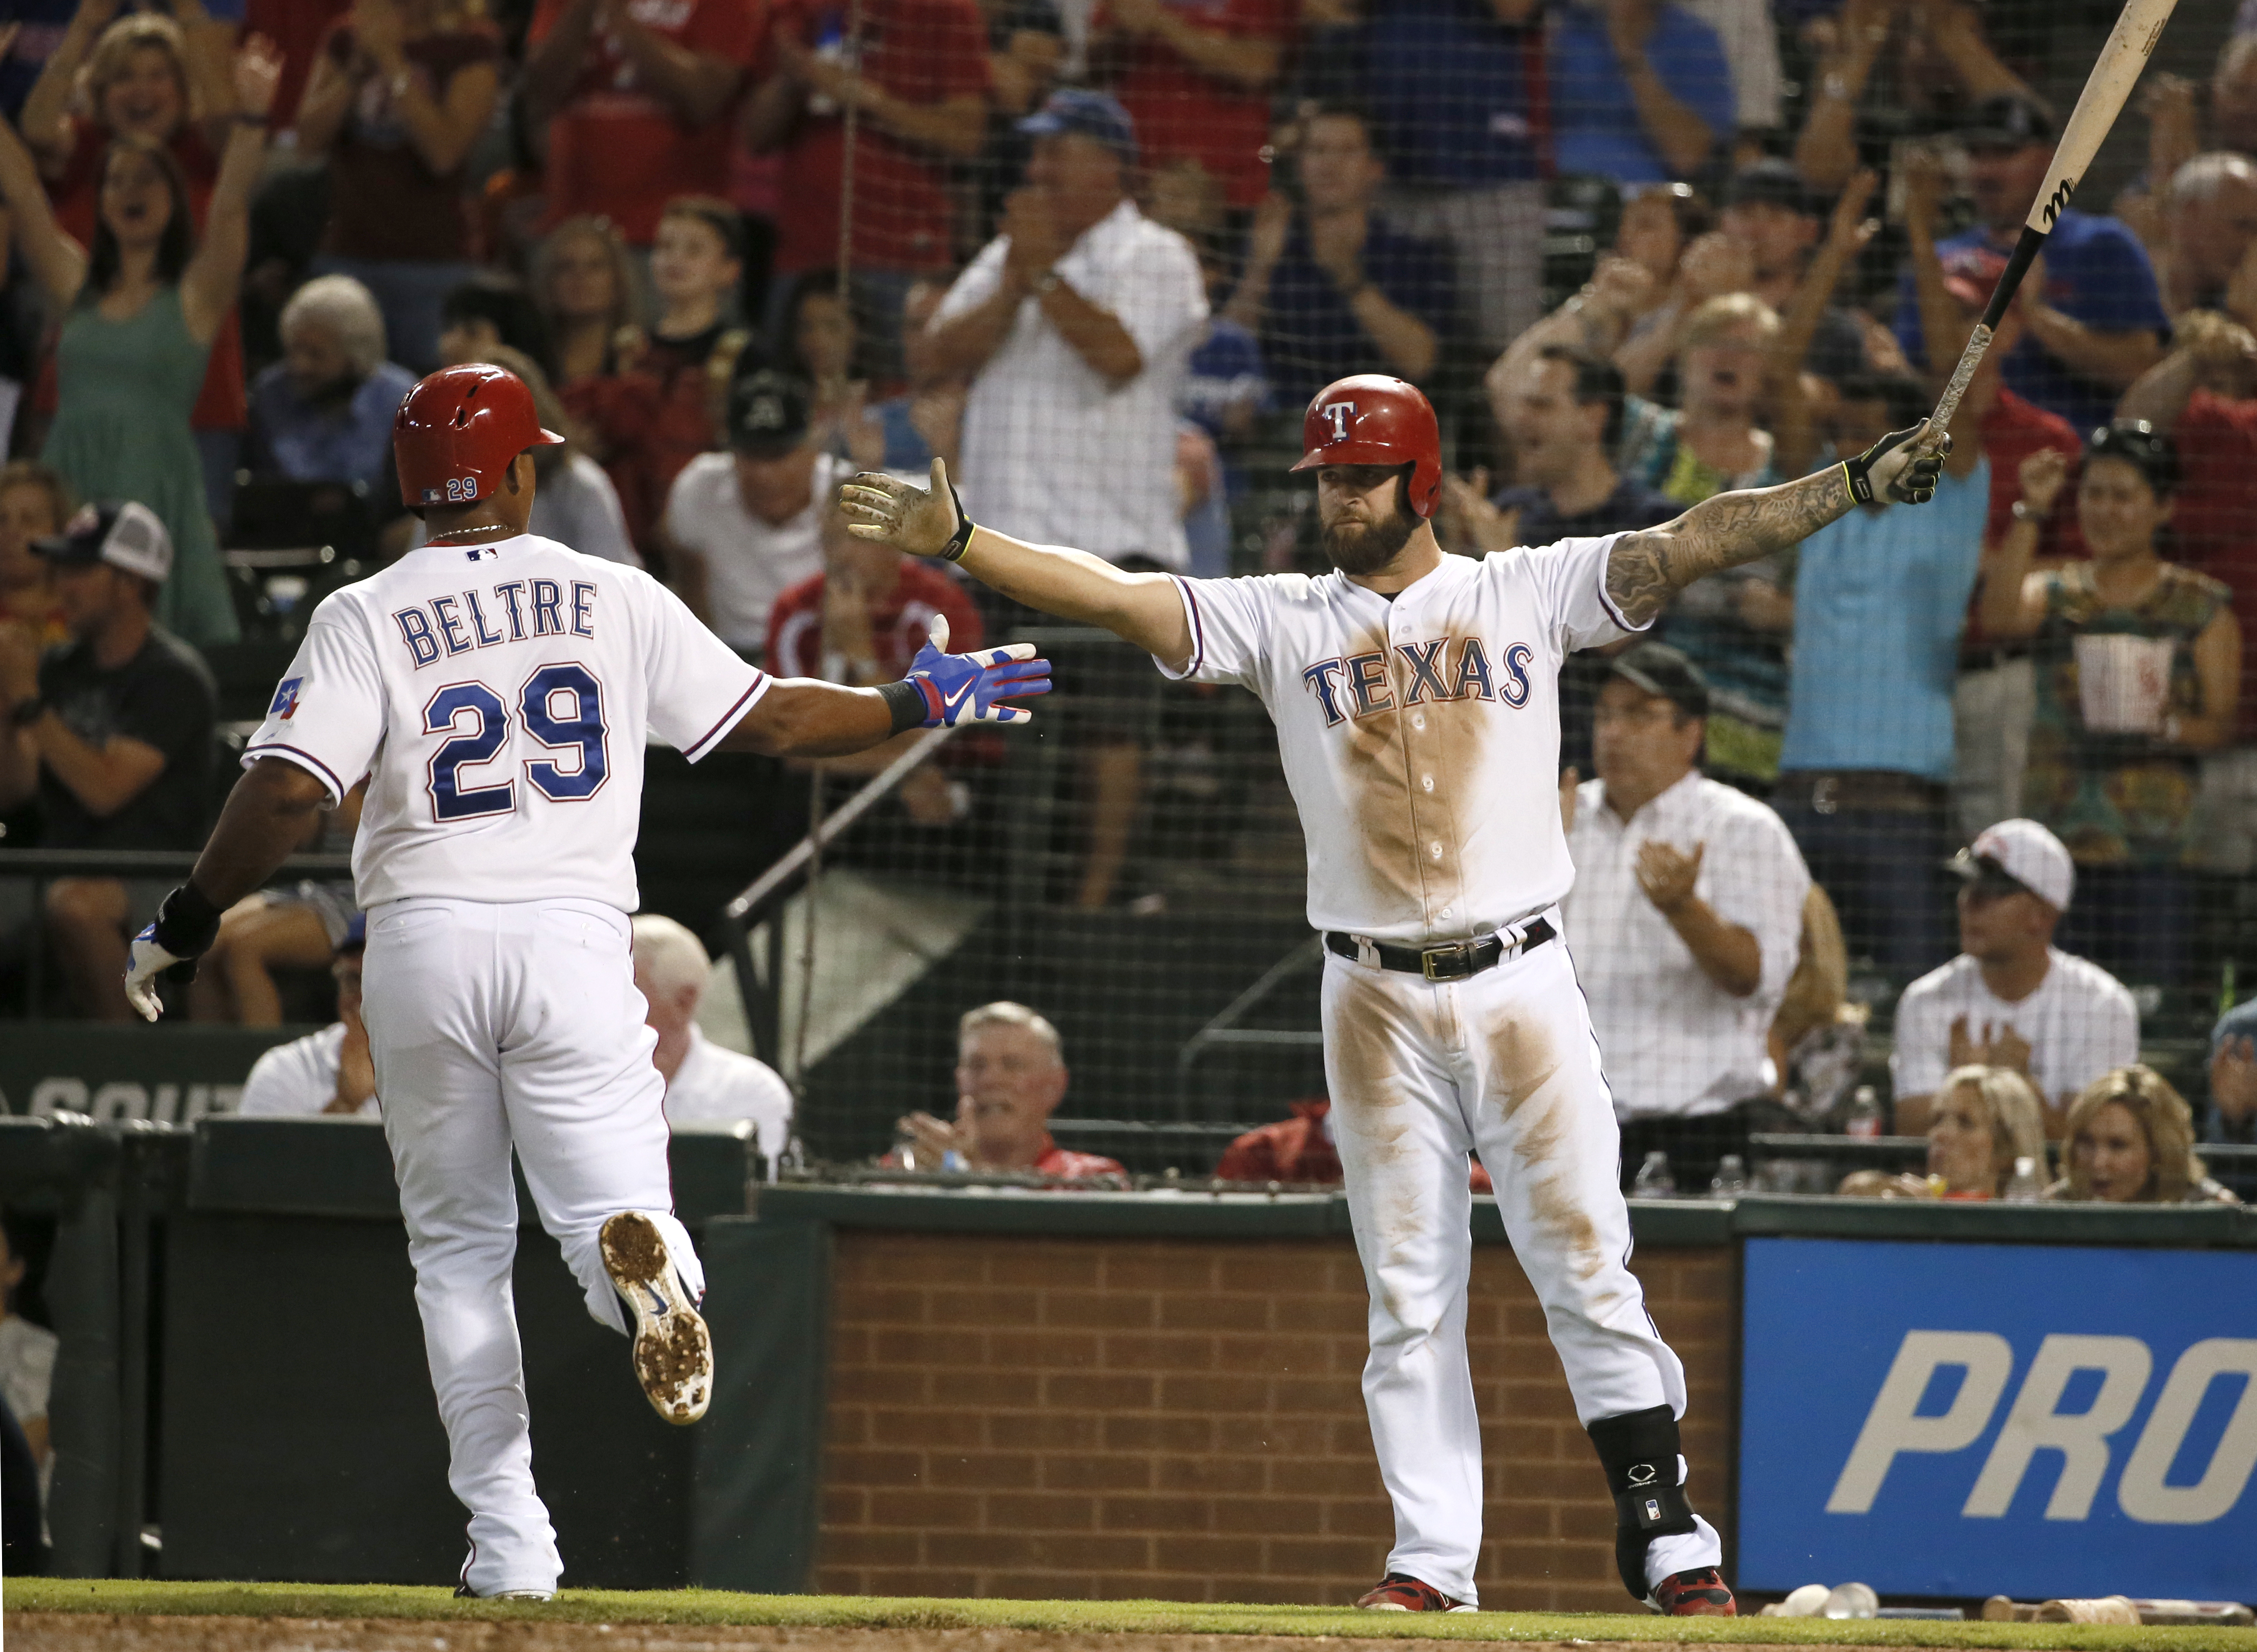 Texas Rangers' Adrian Beltre is congratulated on scoring by Mike Napoli, right, in the third inning of a baseball game against the Detroit Tigers, Wednesday, Sept. 30, 2015, in Arlington, Texas. (AP Photo/Tony Gutierrez)